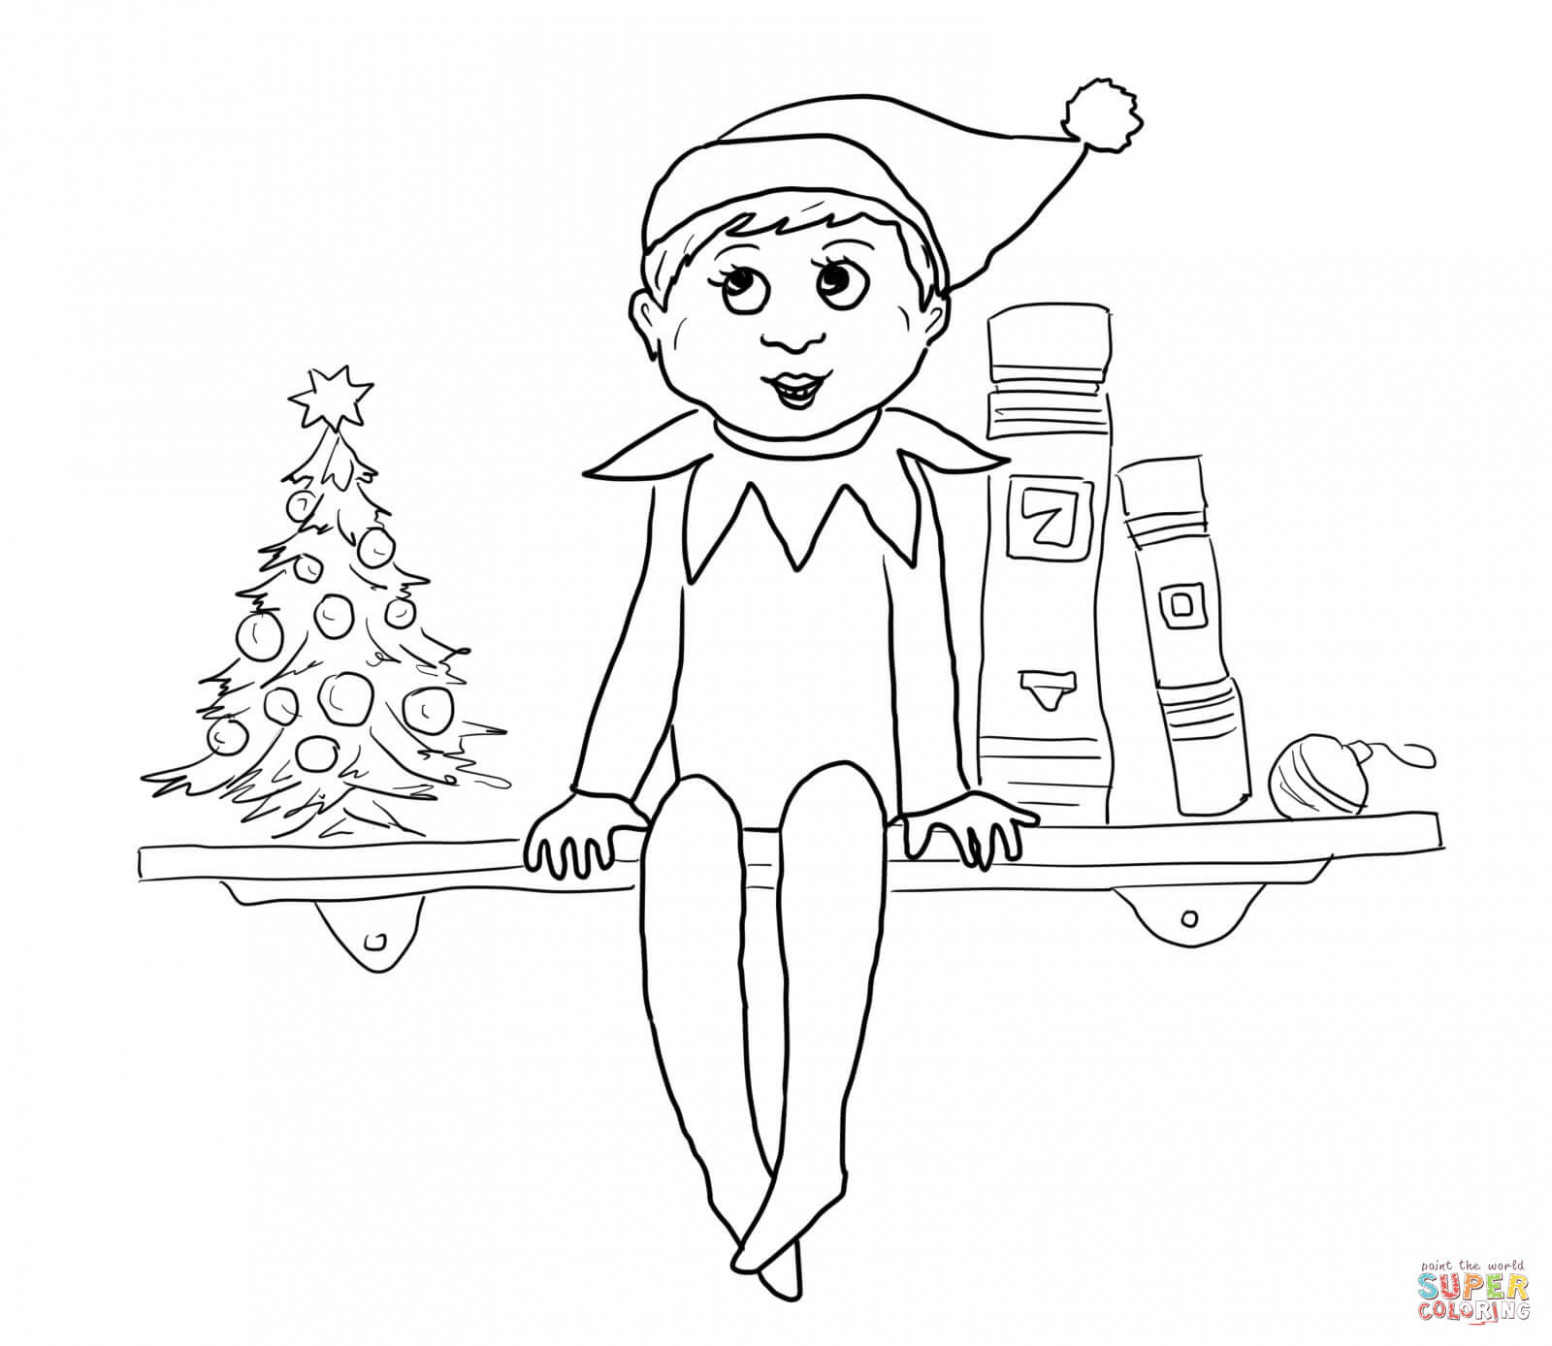 Elf on the Shelf coloring pages   Free Coloring Pages – Christmas Coloring Sheets Elf